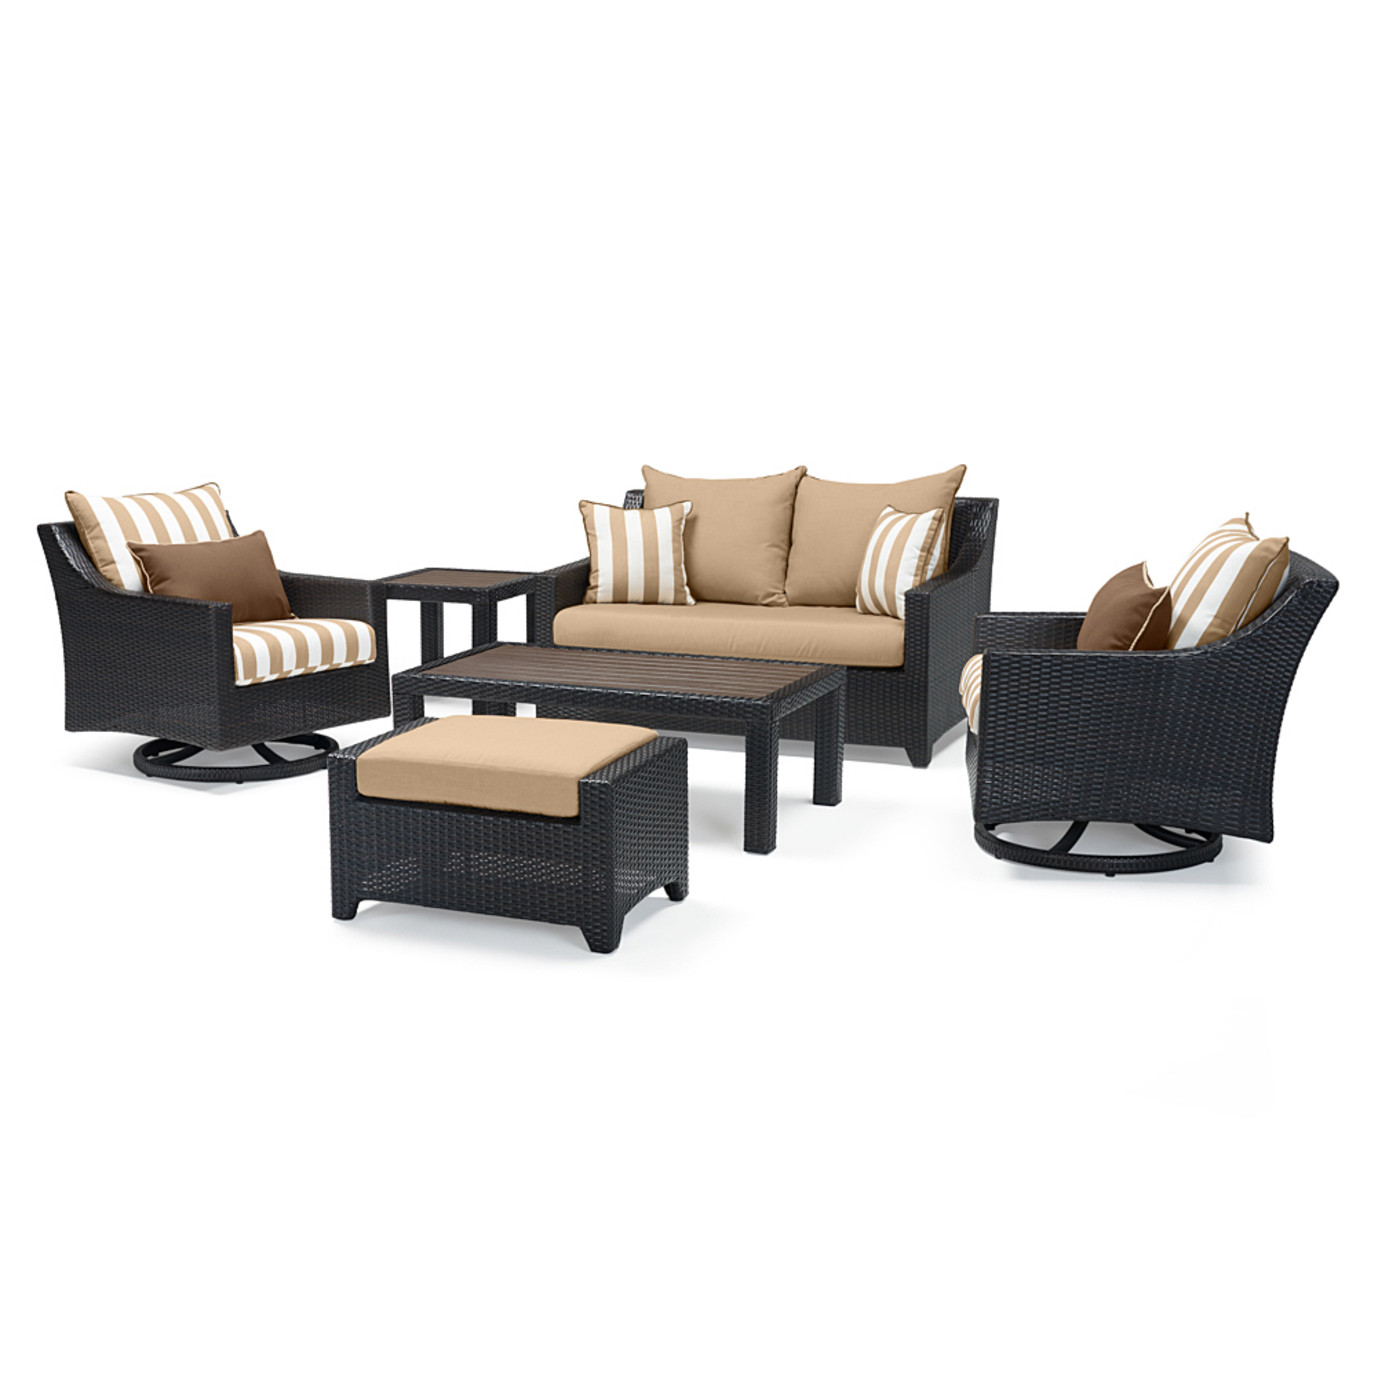 Deco™ Deluxe 6pc Love & Motion Club Seating Set - Maxim Beige